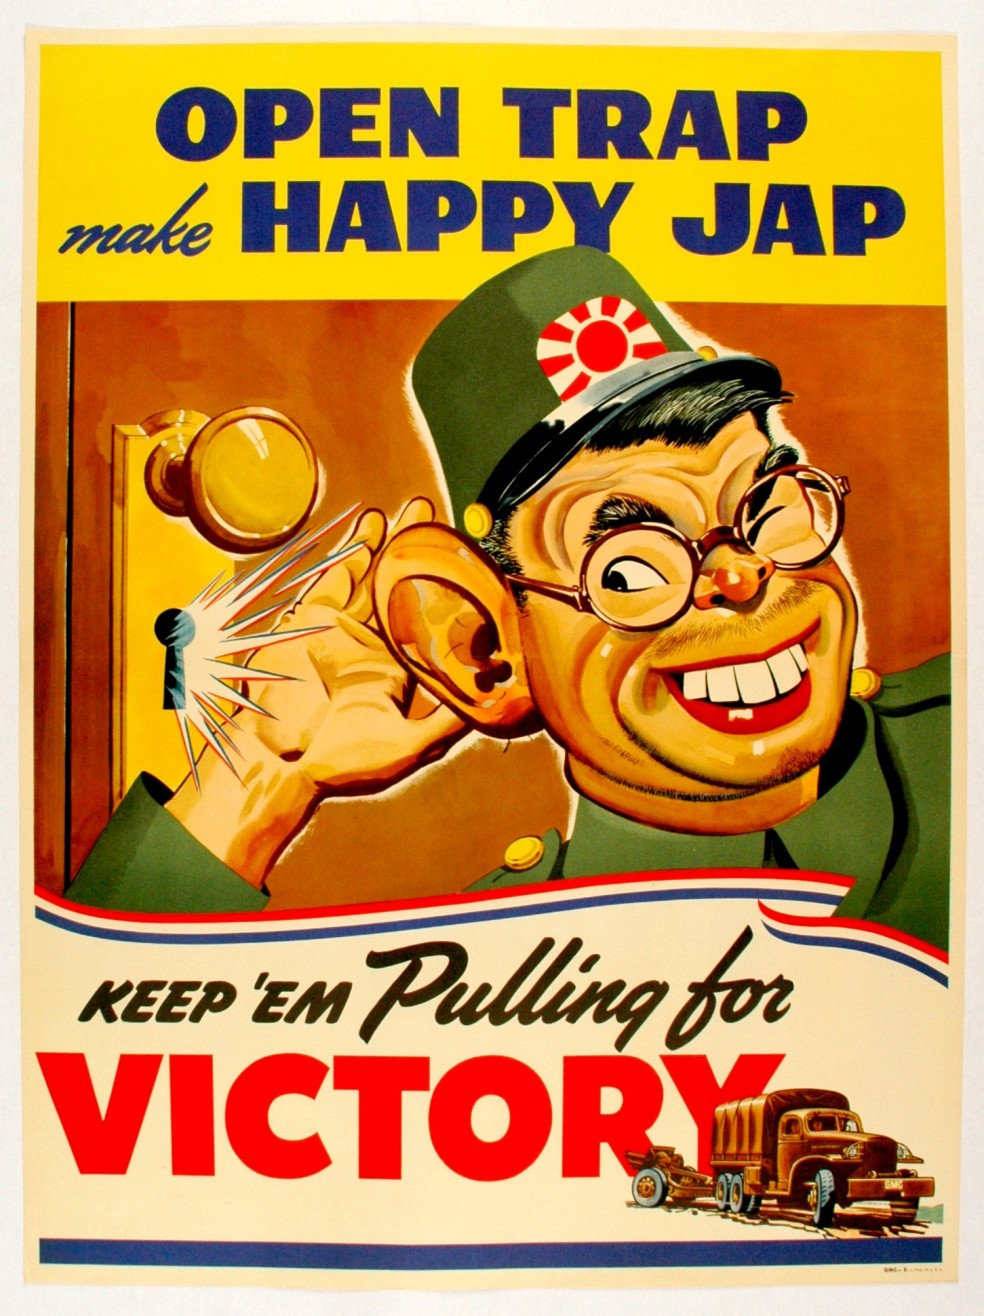 WWII_Posters_Safety_Security_Loose_Talk_Open_Trap_Happy_Jap_1LG